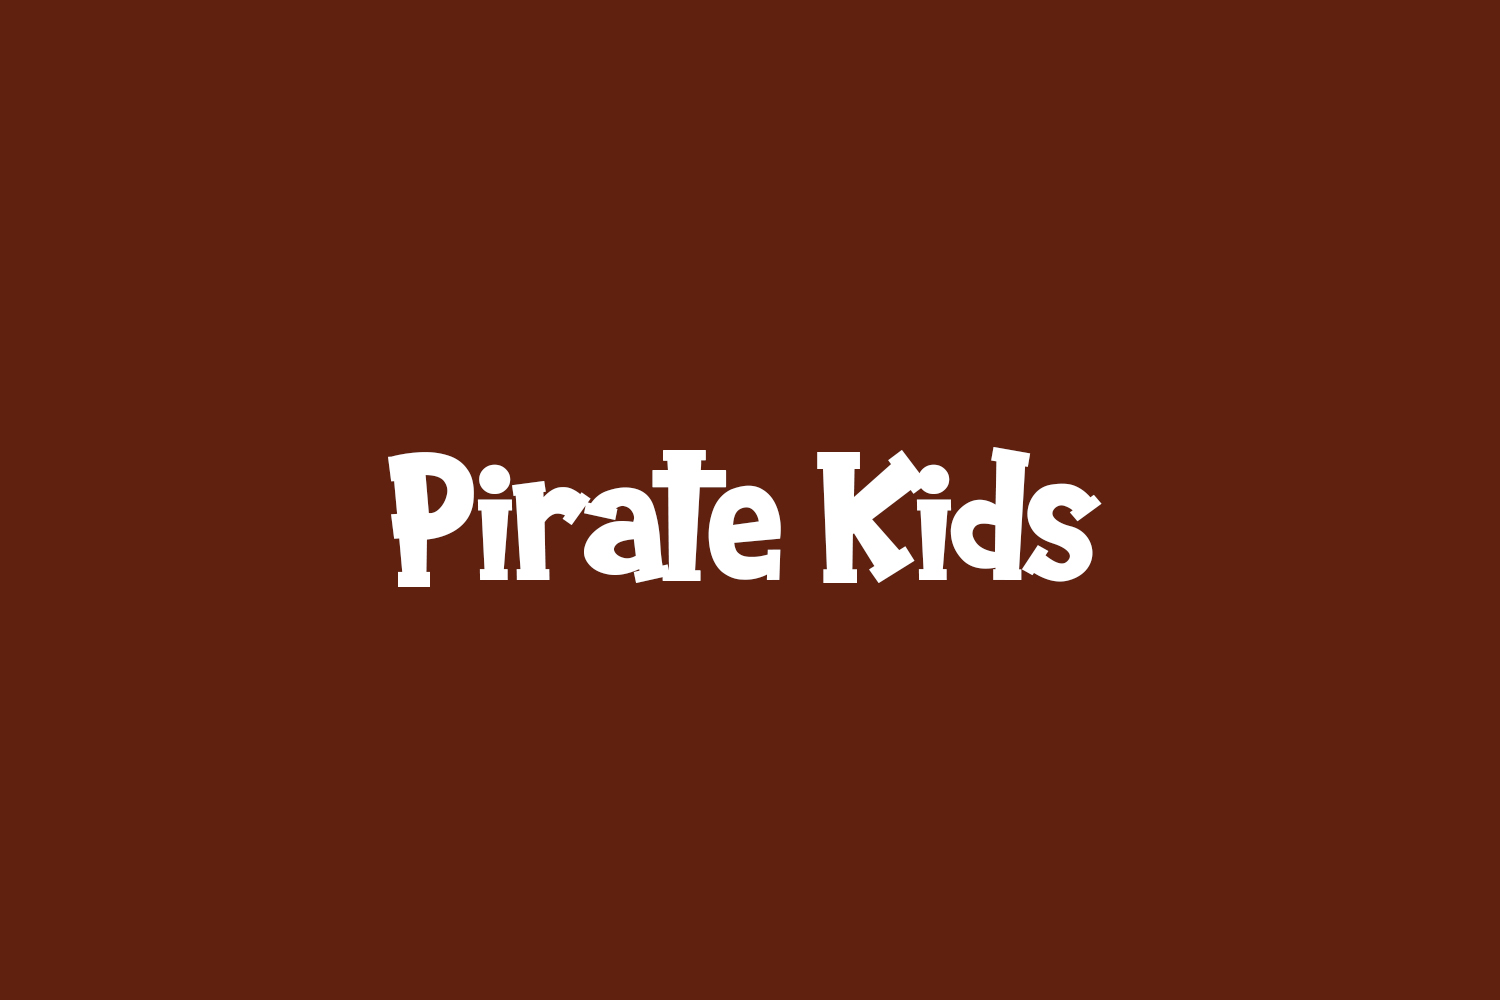 Pirate Kids Free Font